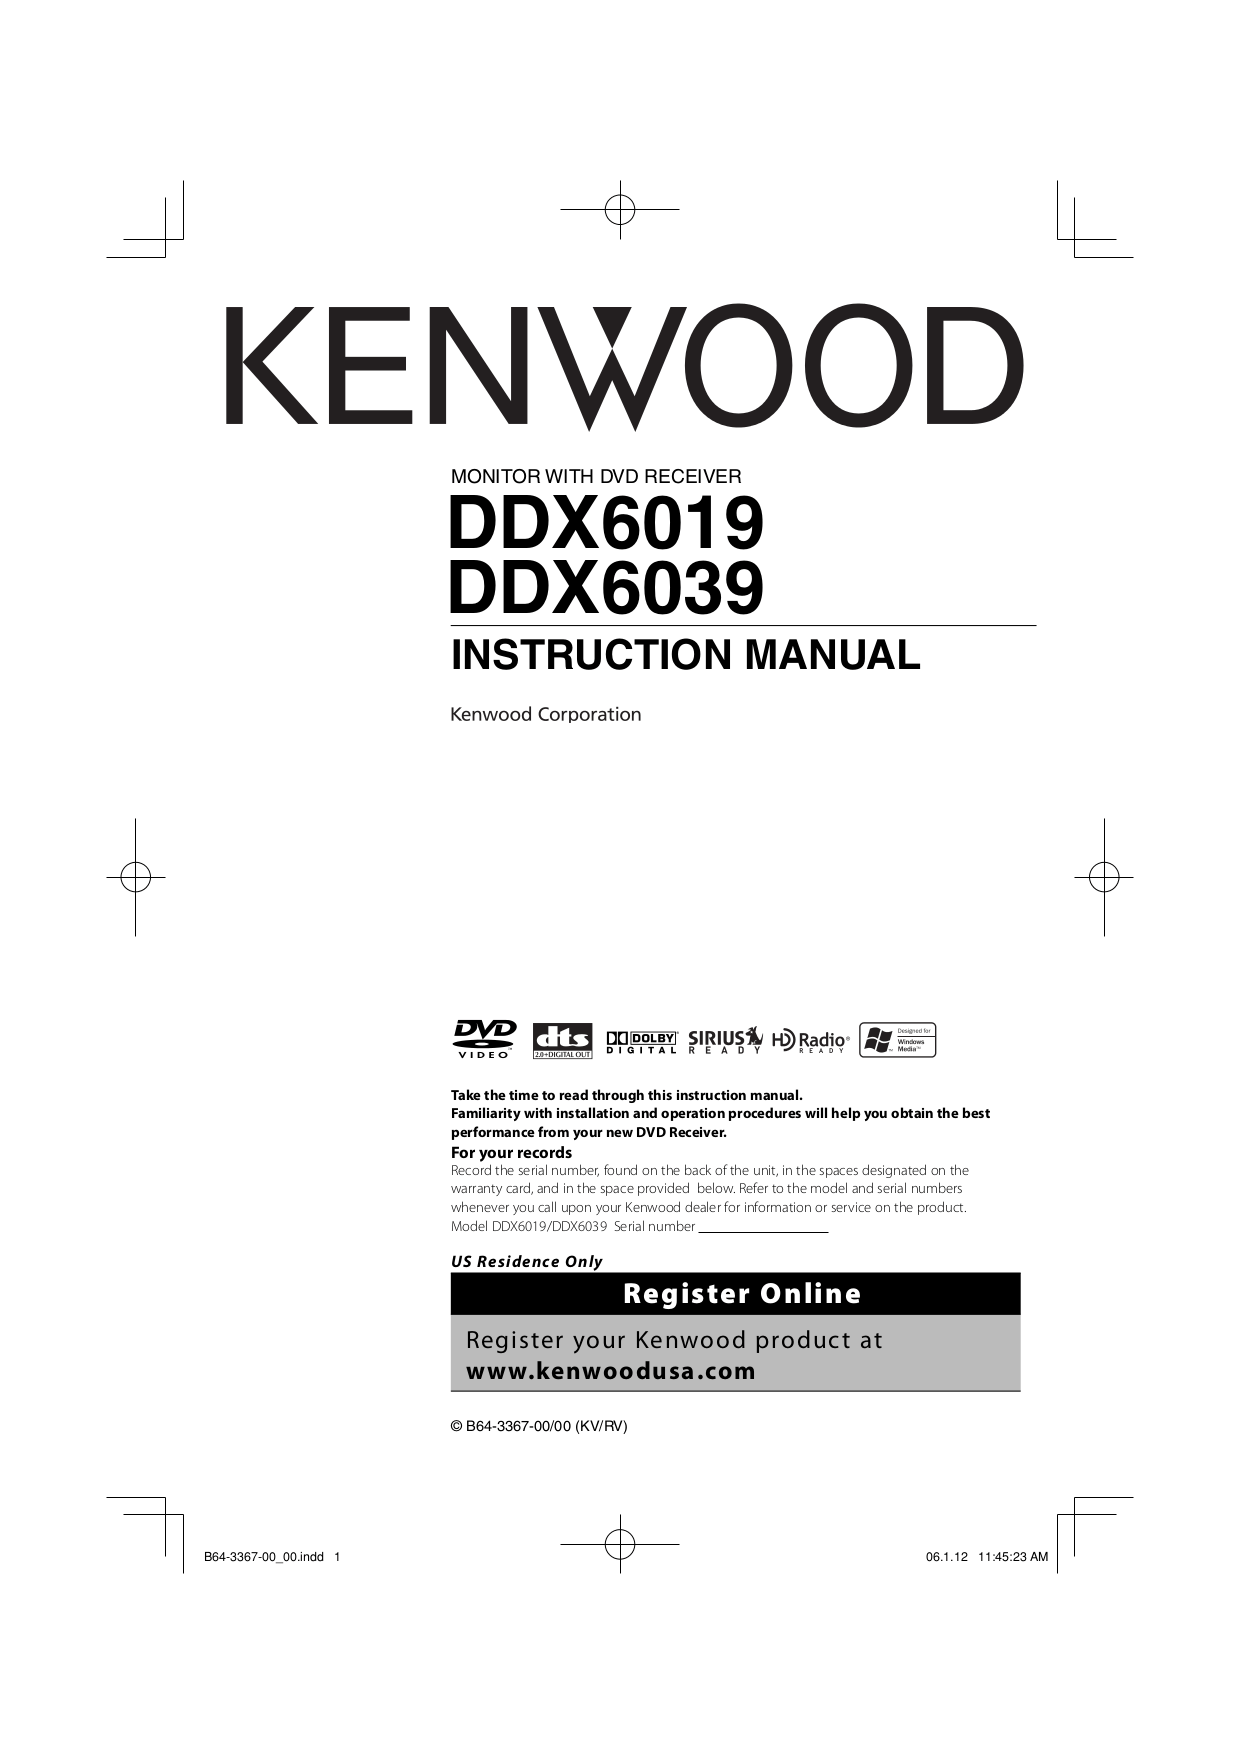 Download Free For Kenwood Ss 79 Receiver Manual